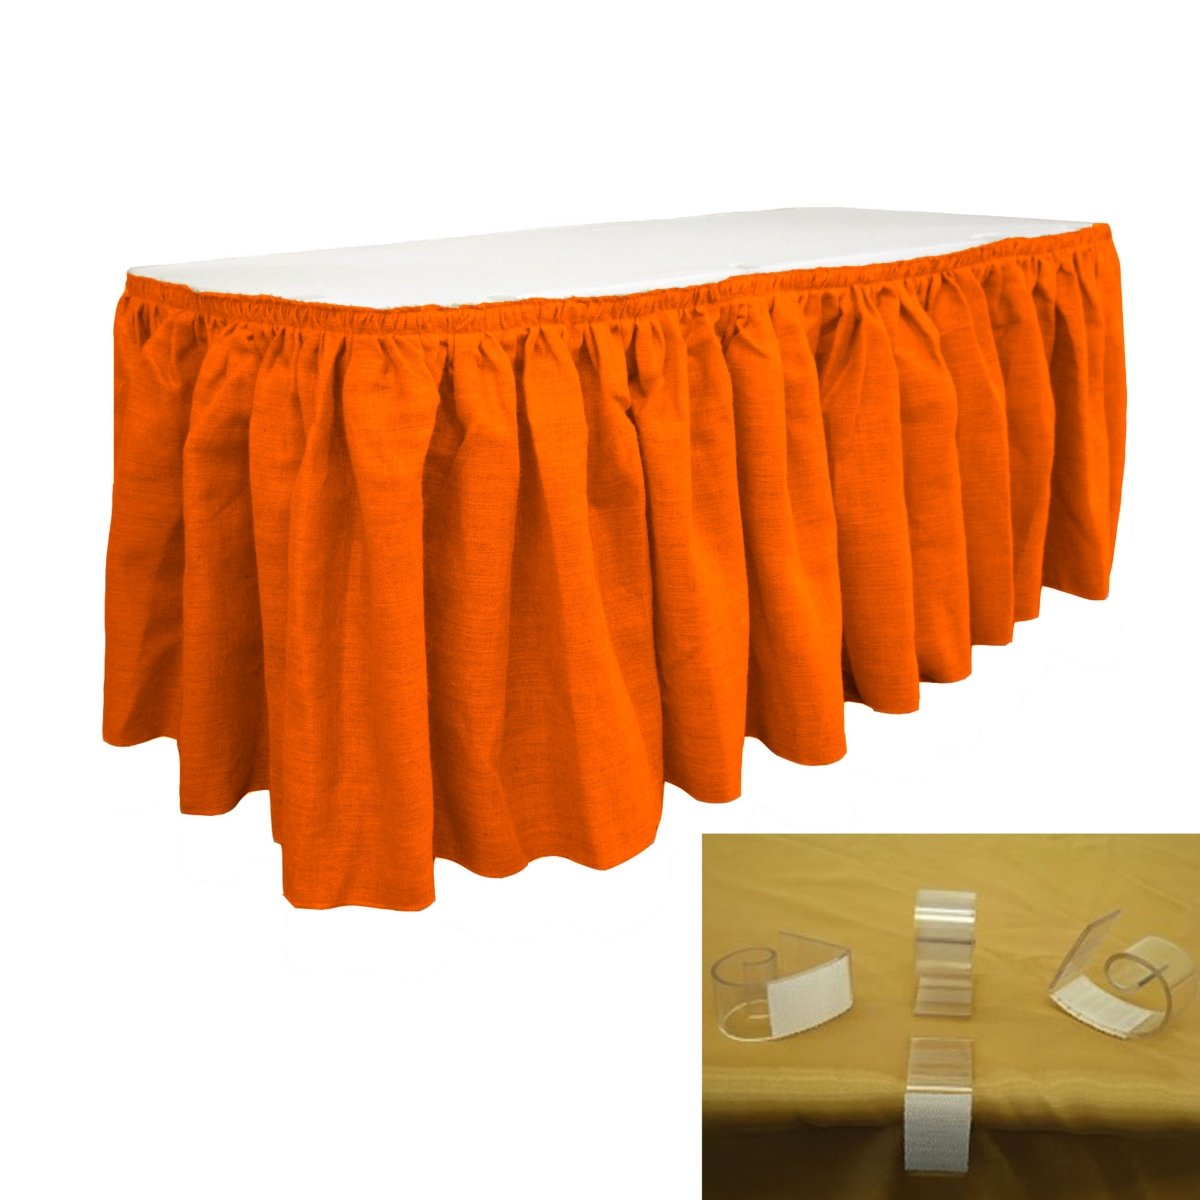 LA Linen SkirtBurlap14x29-10Lclips-Orange Burlap Table Skirt with 10 L-Clips44; Orange - 14 ft. x 29 in.